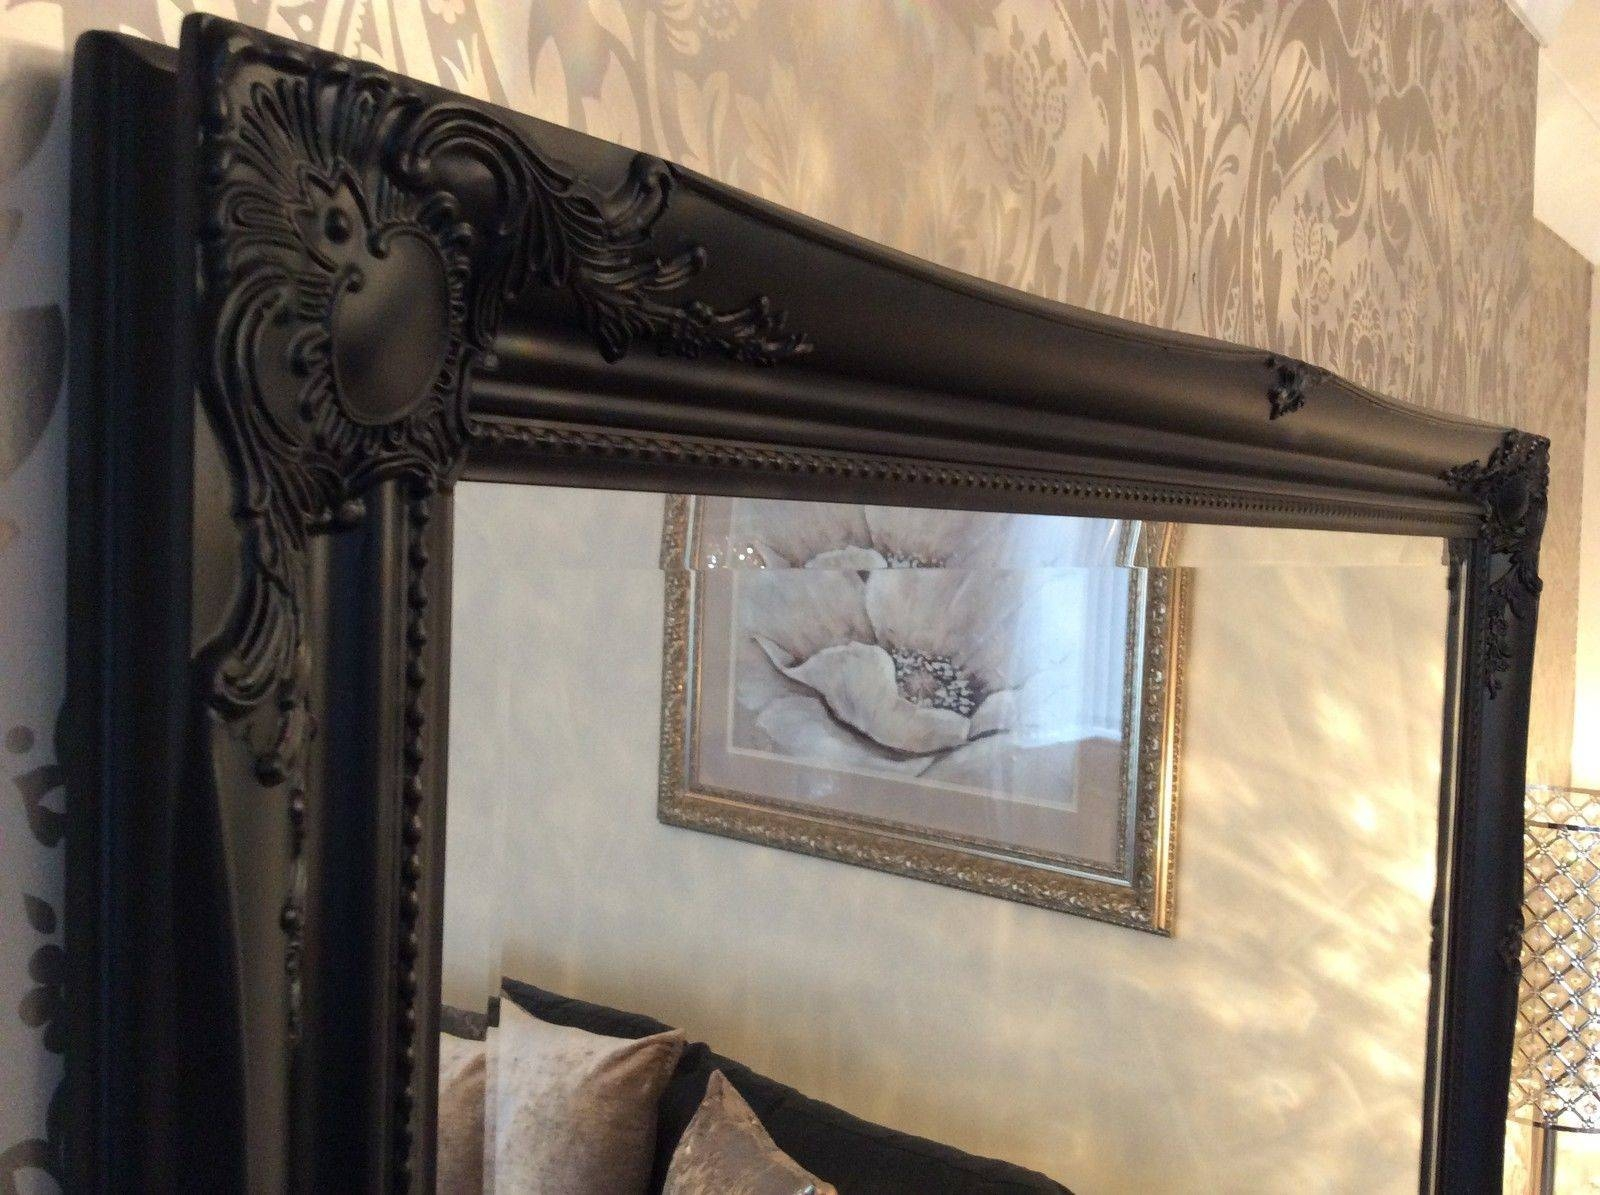 New Black Shabby Chic Ornate Mirror - Choose Your Size - Ready To for Black Mirrors (Image 10 of 15)